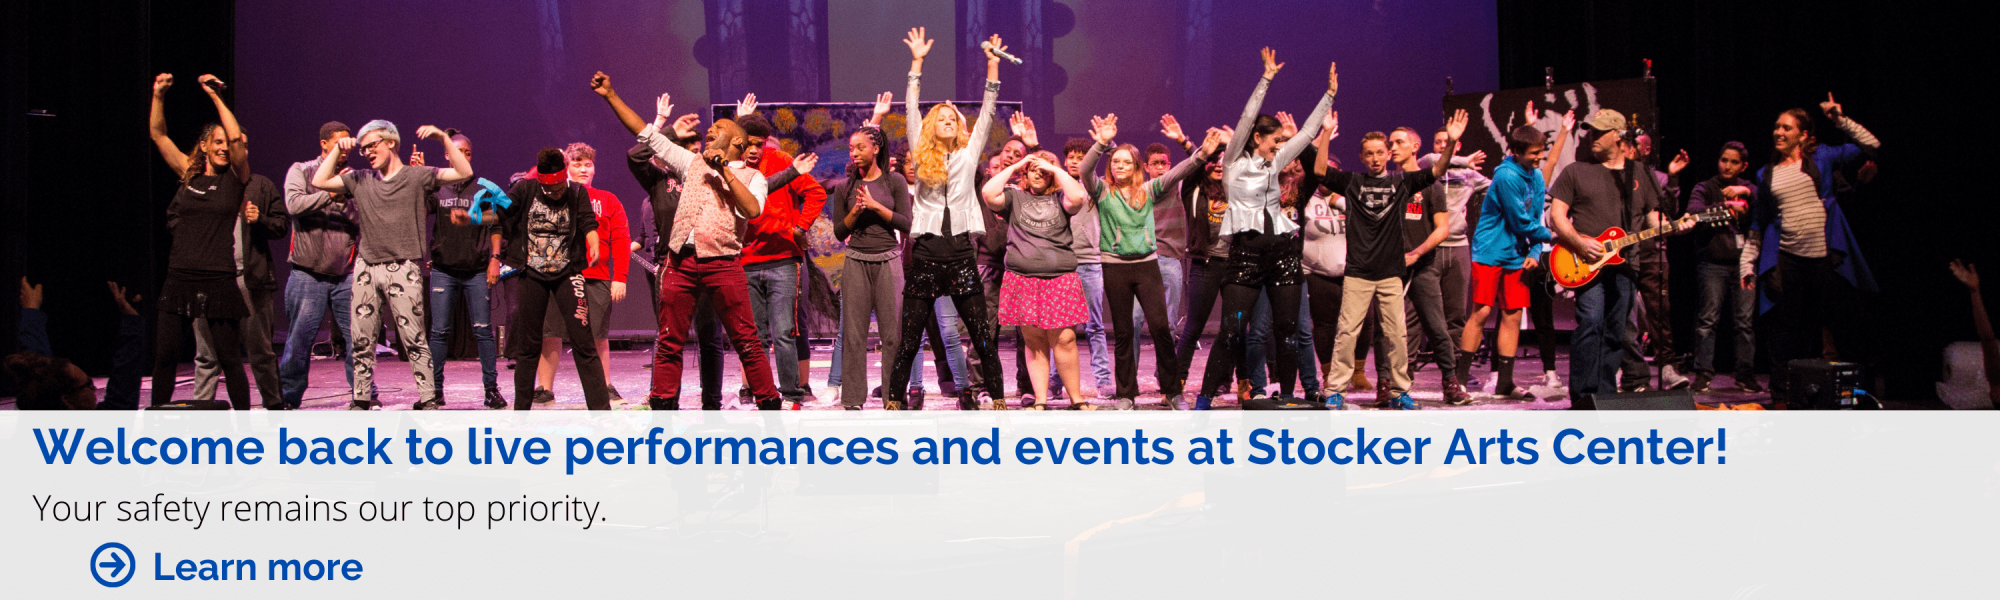 Welcome back to live performances at Stocker Arts Center. Your safety remains our top priority. Learn More.